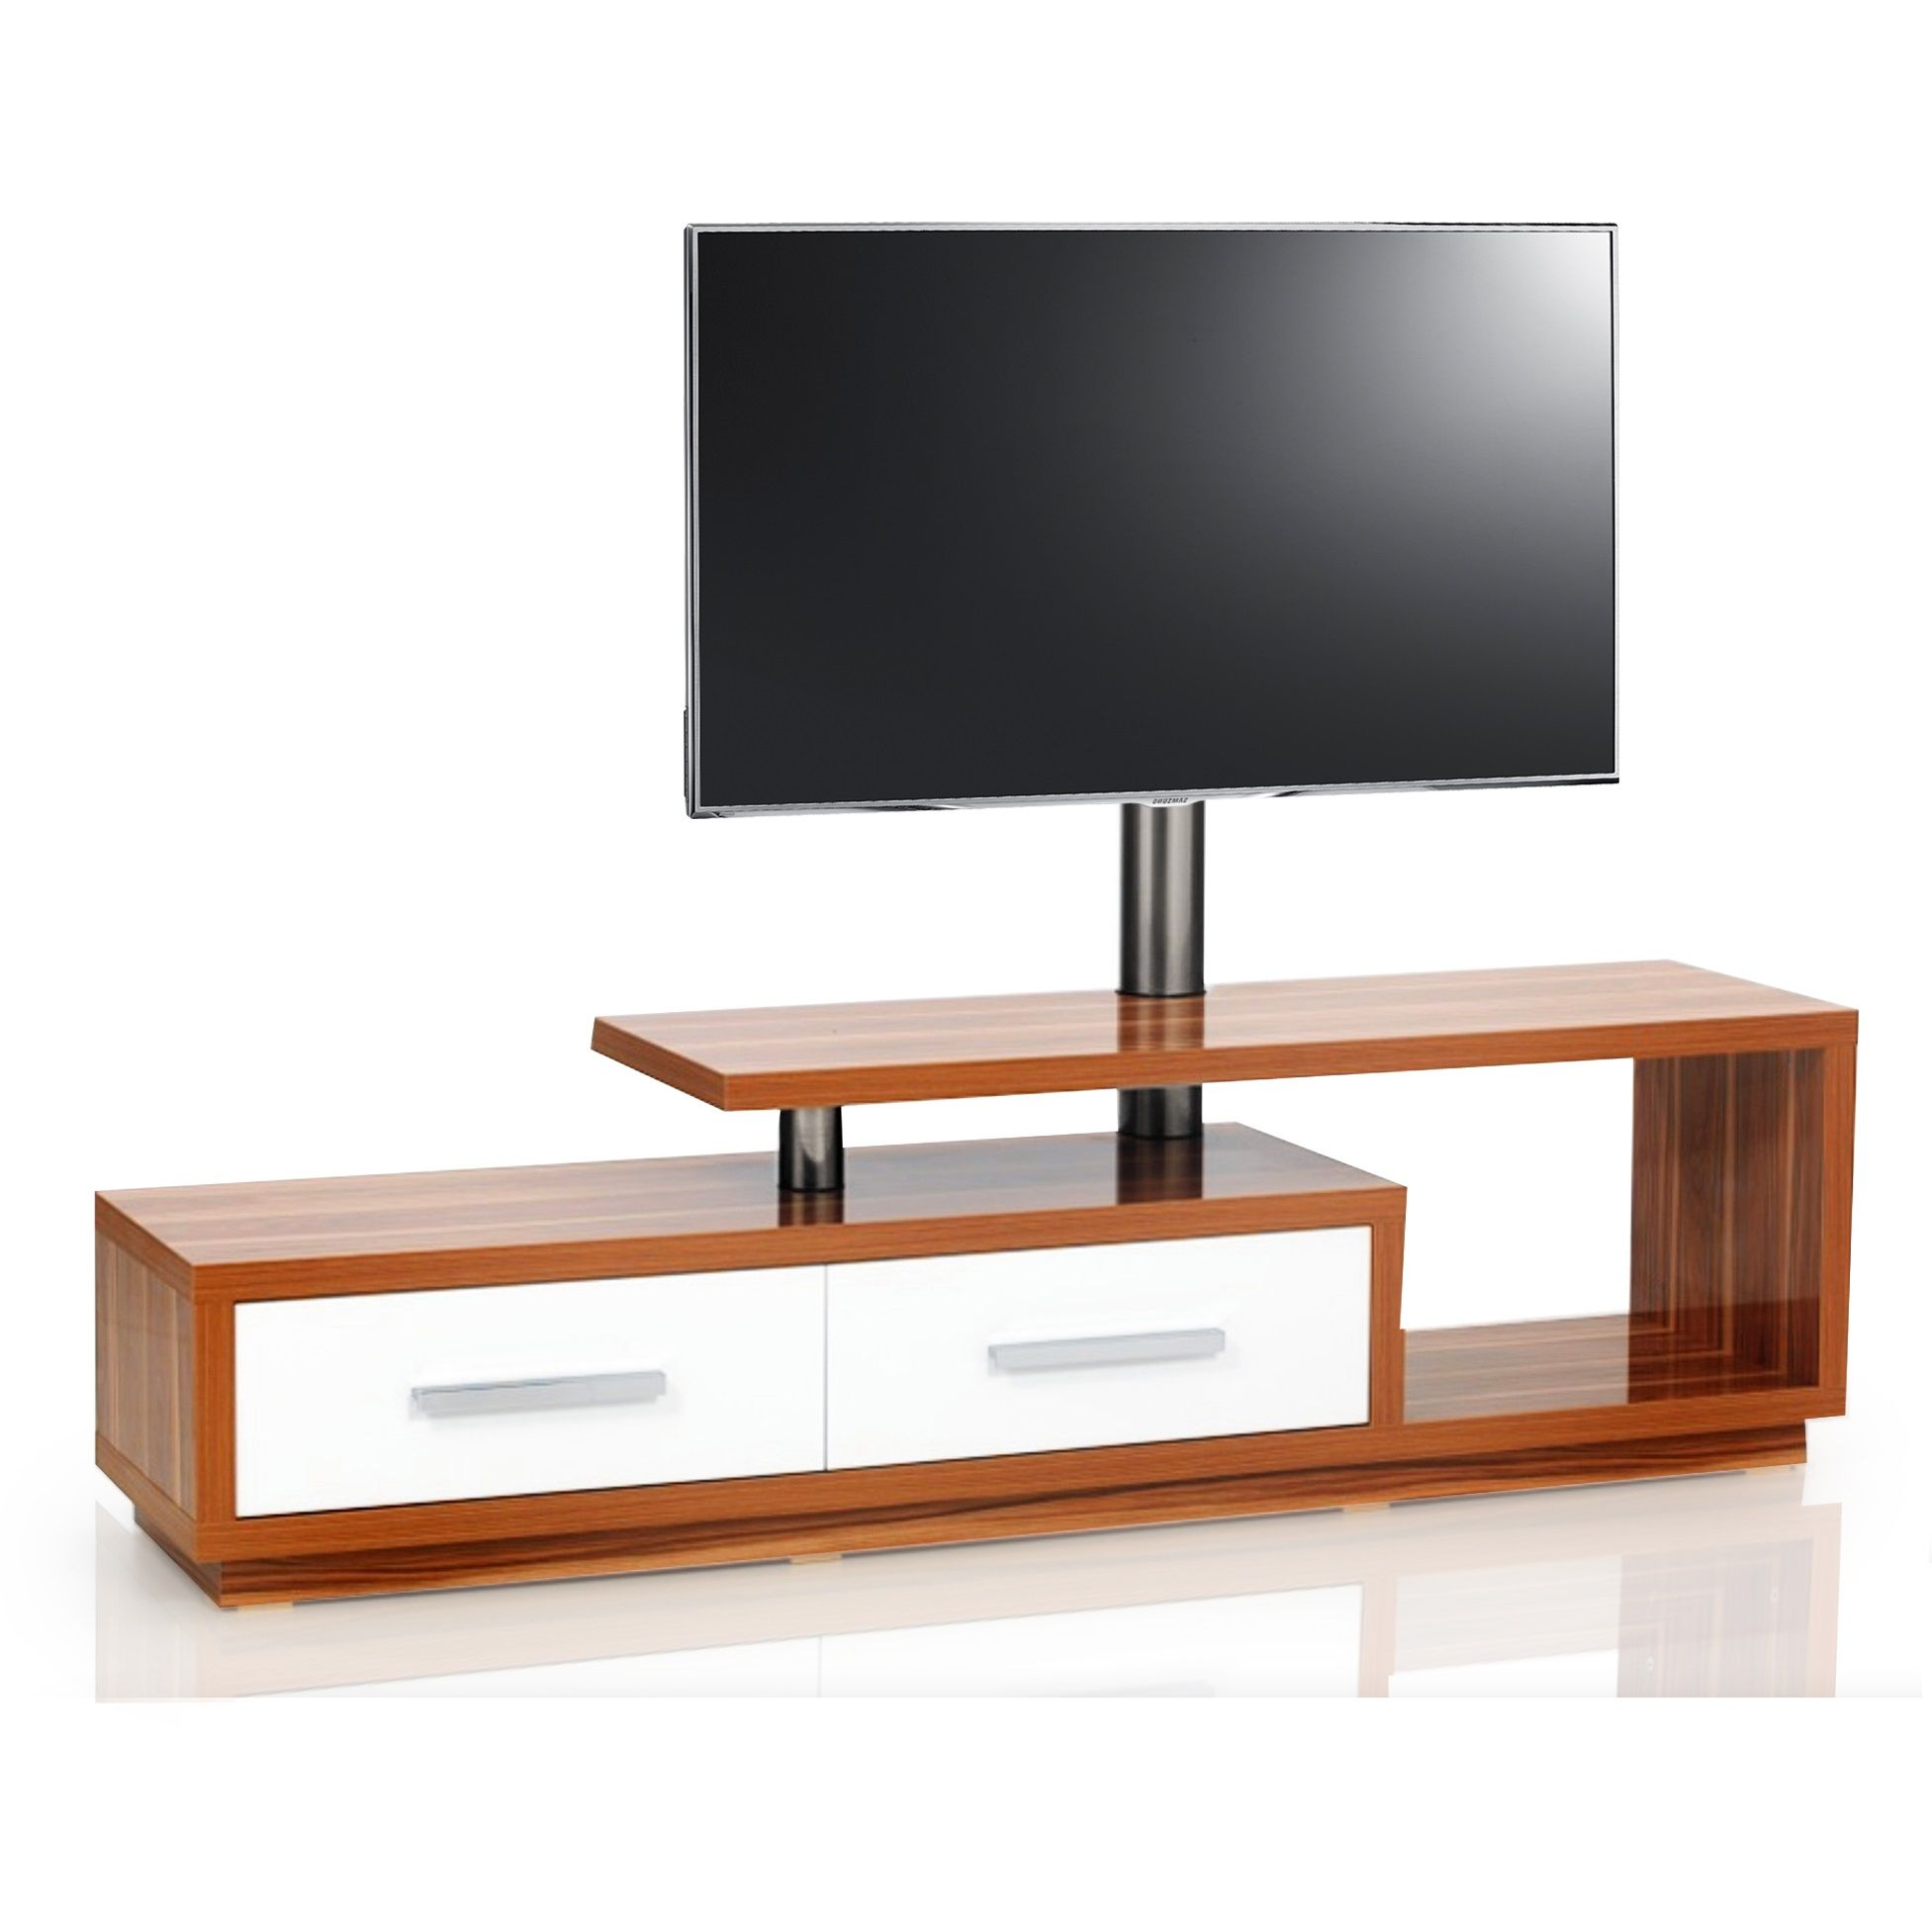 Stunning Tables De Television Contemporary Joshkrajcik Us  # Model Table Tele